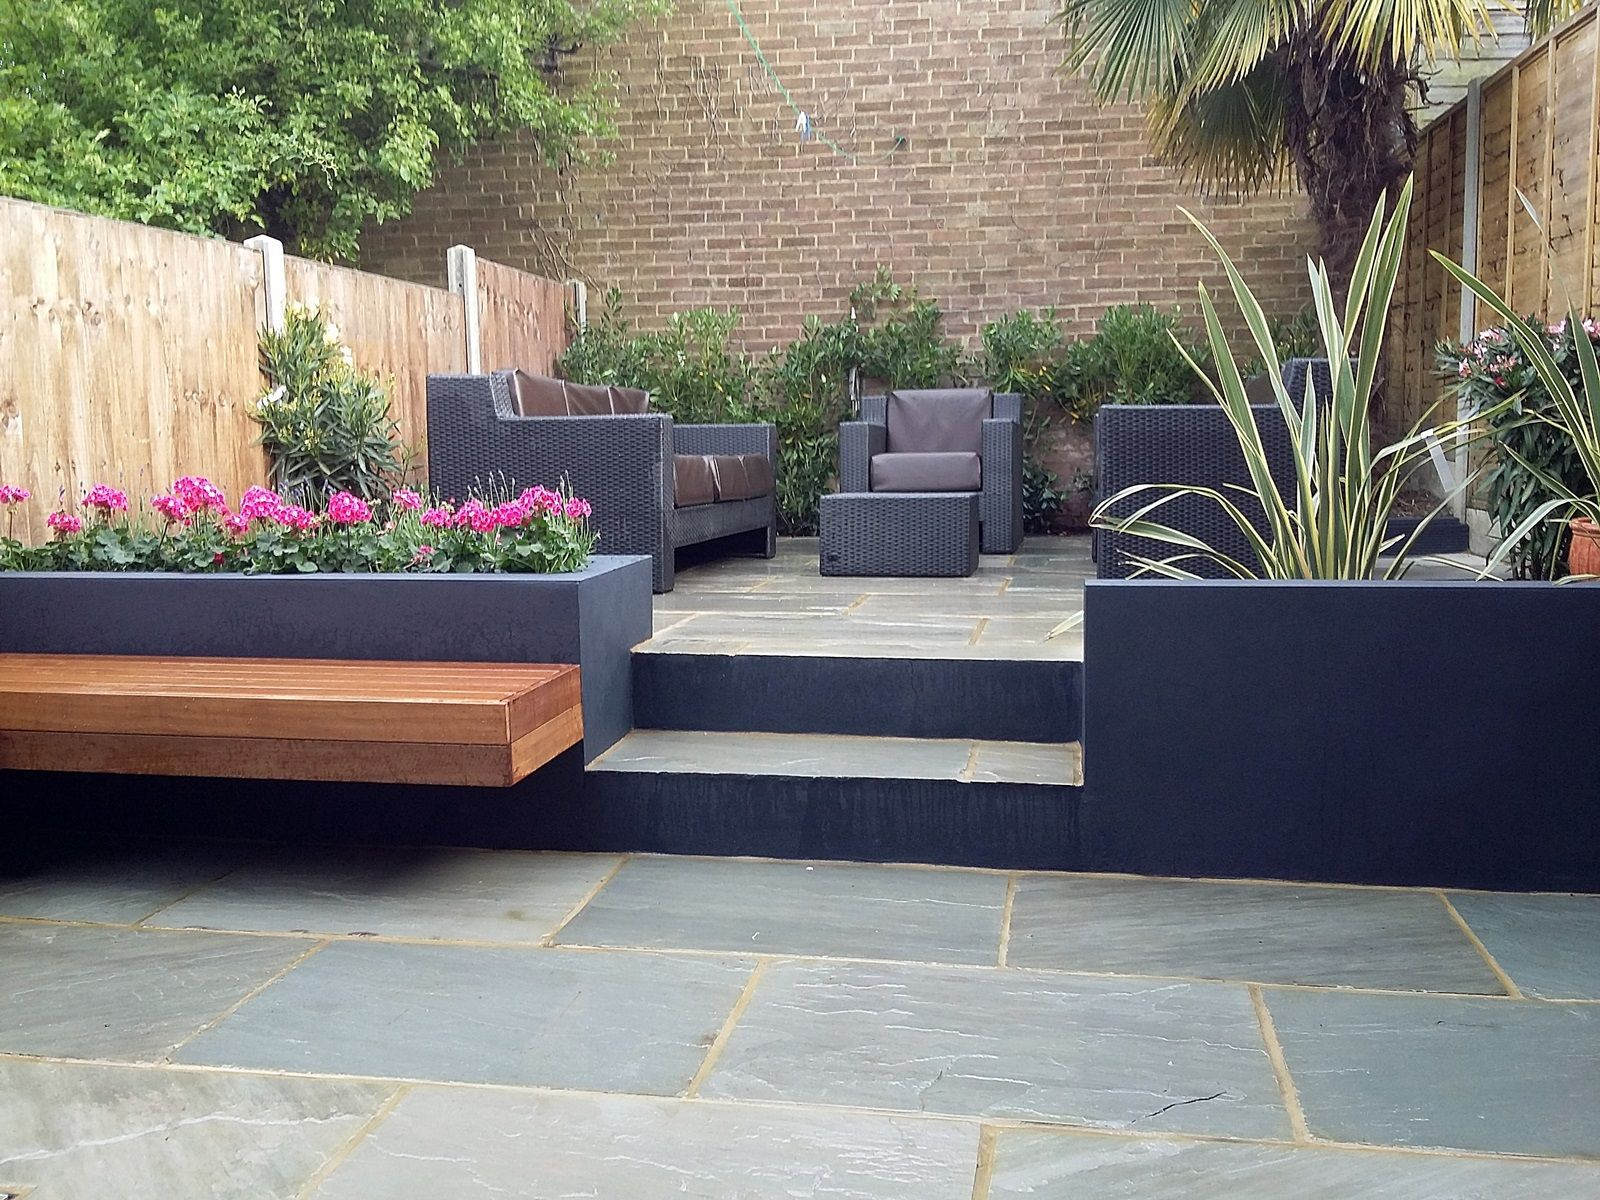 17 Best ideas about Rendering Walls on Pinterest London garden